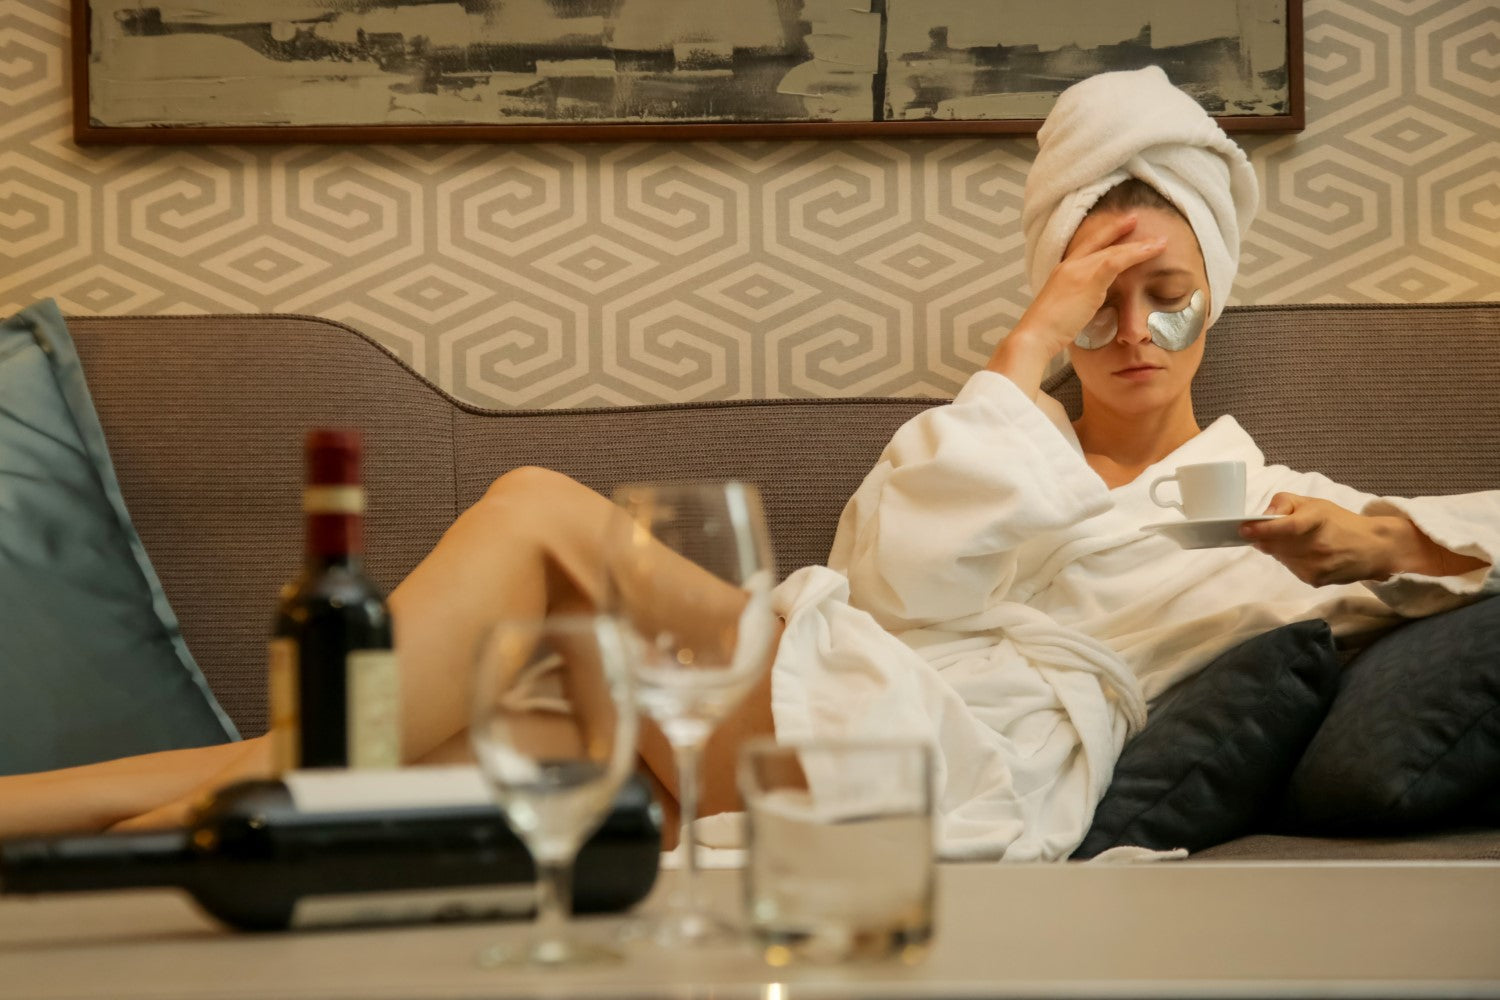 lady holding a cup of coffee after bath with alcohol on the table in front of her